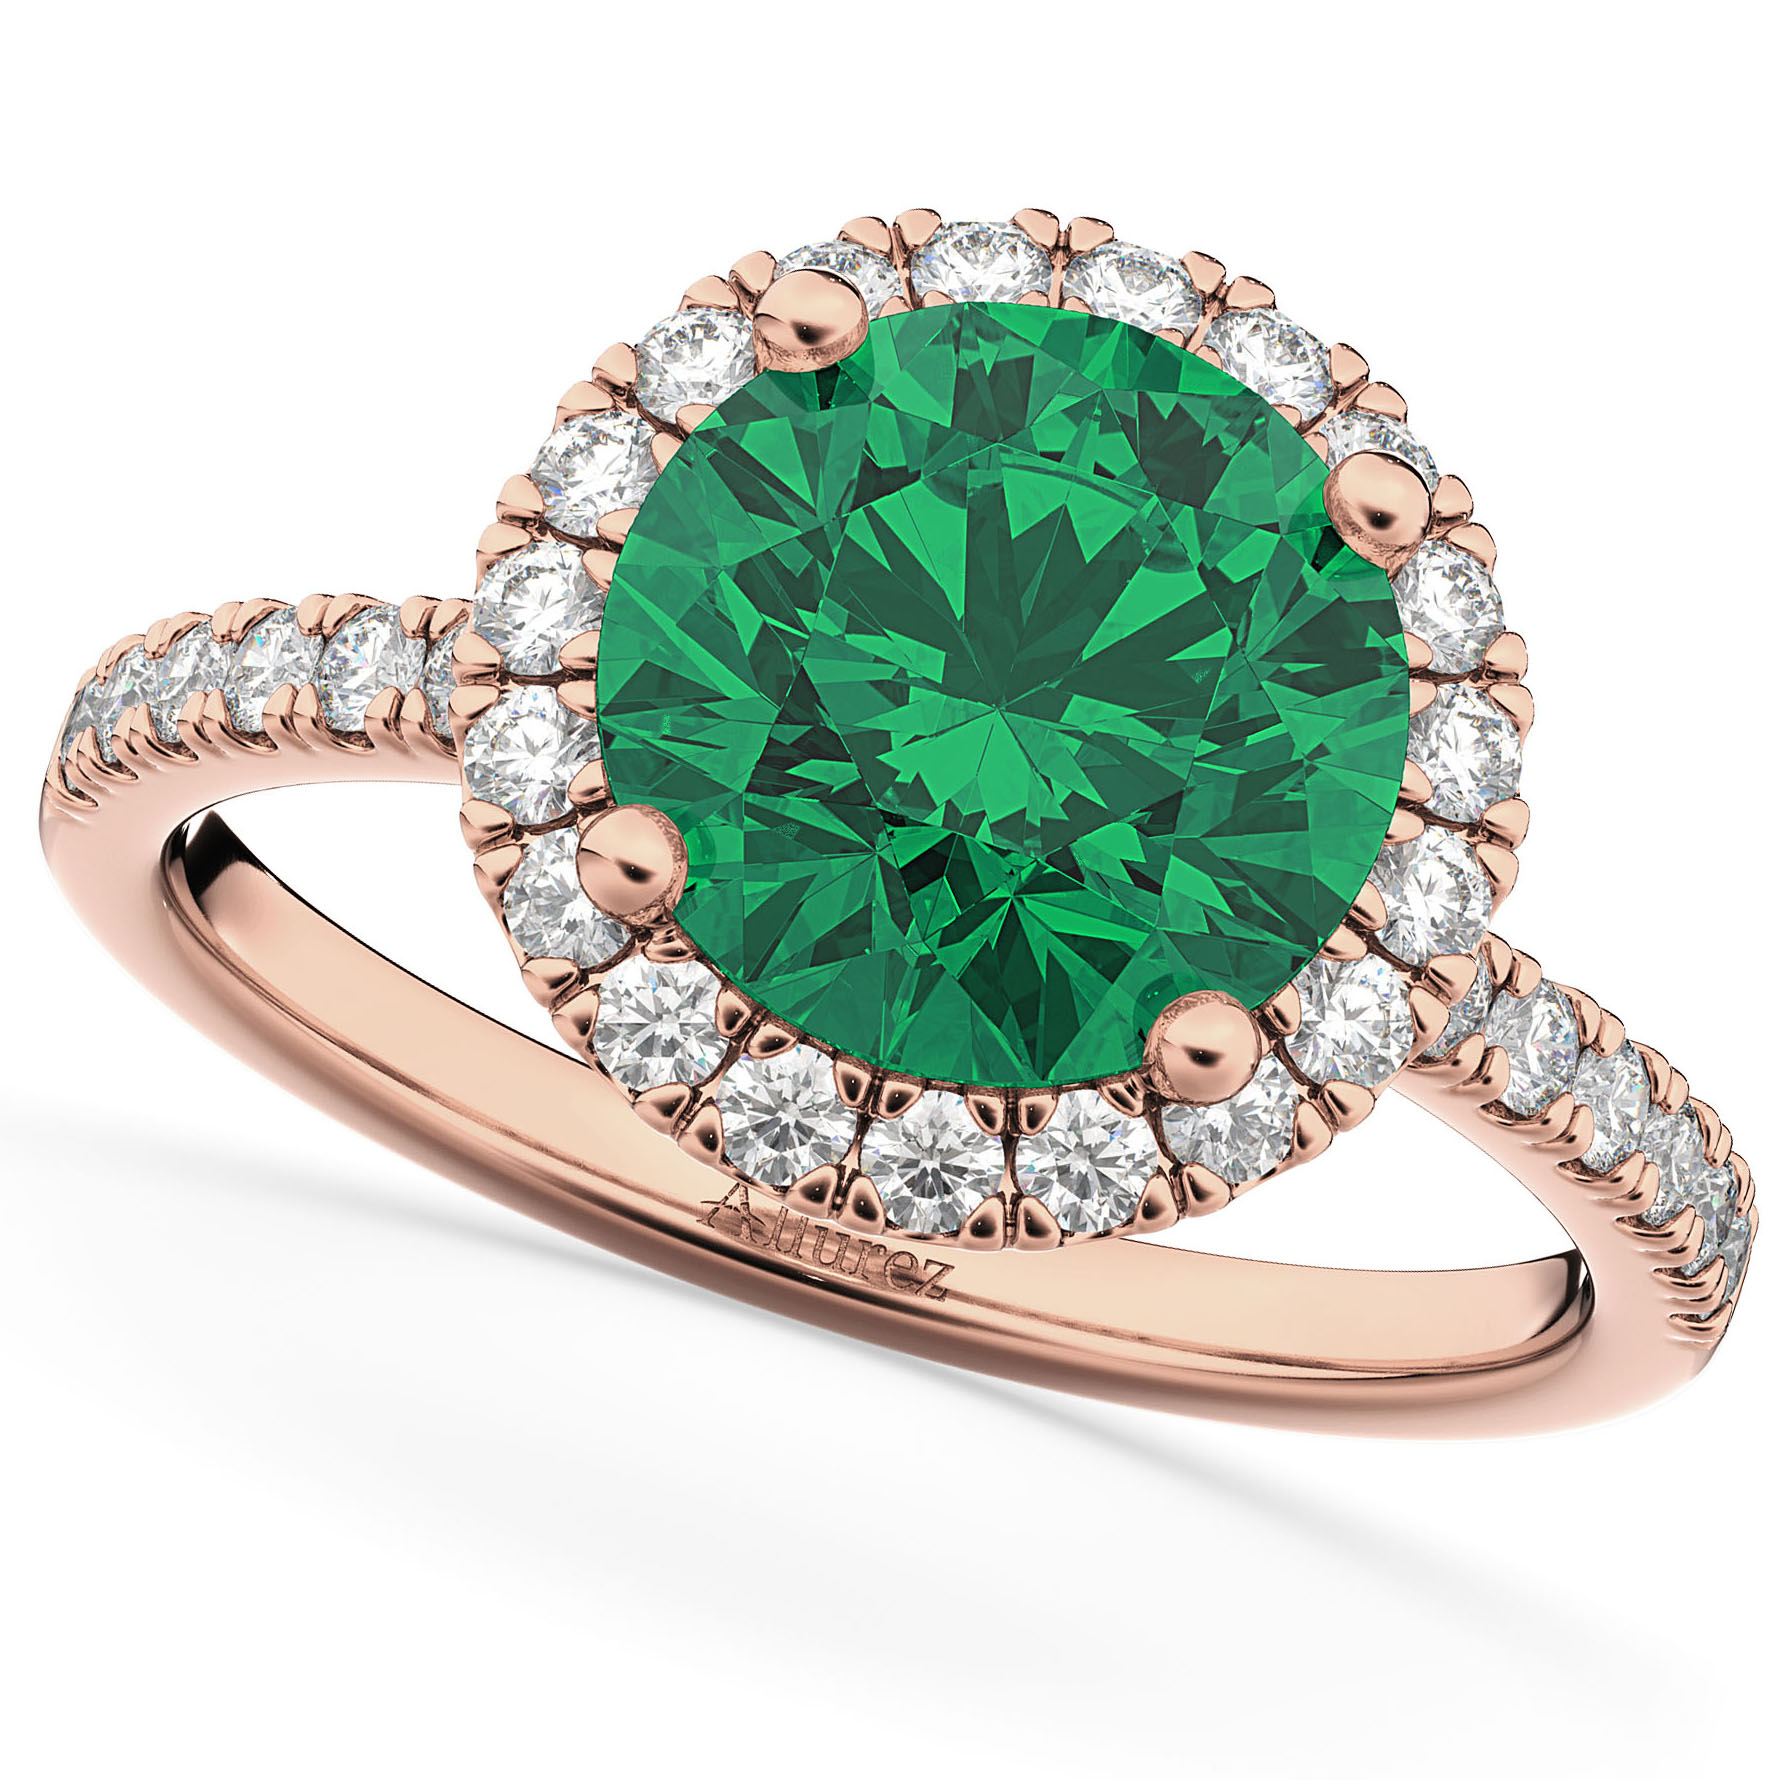 Halo Emerald & Diamond Engagement Ring 14K Rose Gold 2.80ct